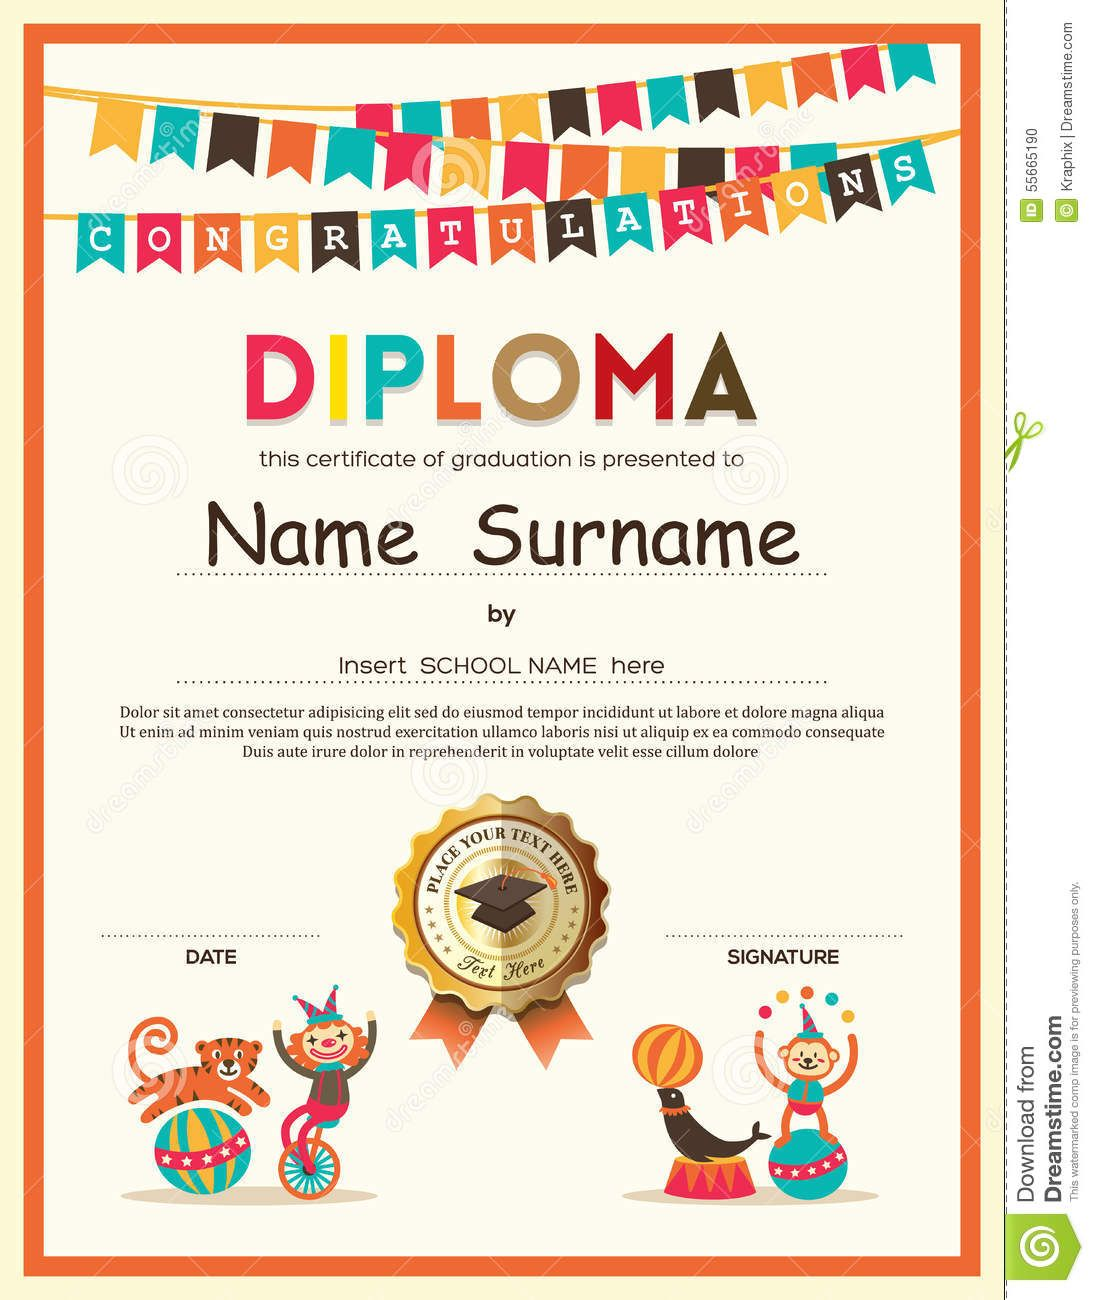 Preschool elementary school kids diploma certificate background photo about preschool elementary school kids diploma certificate template with bunting flags background design 55665190 yadclub Gallery